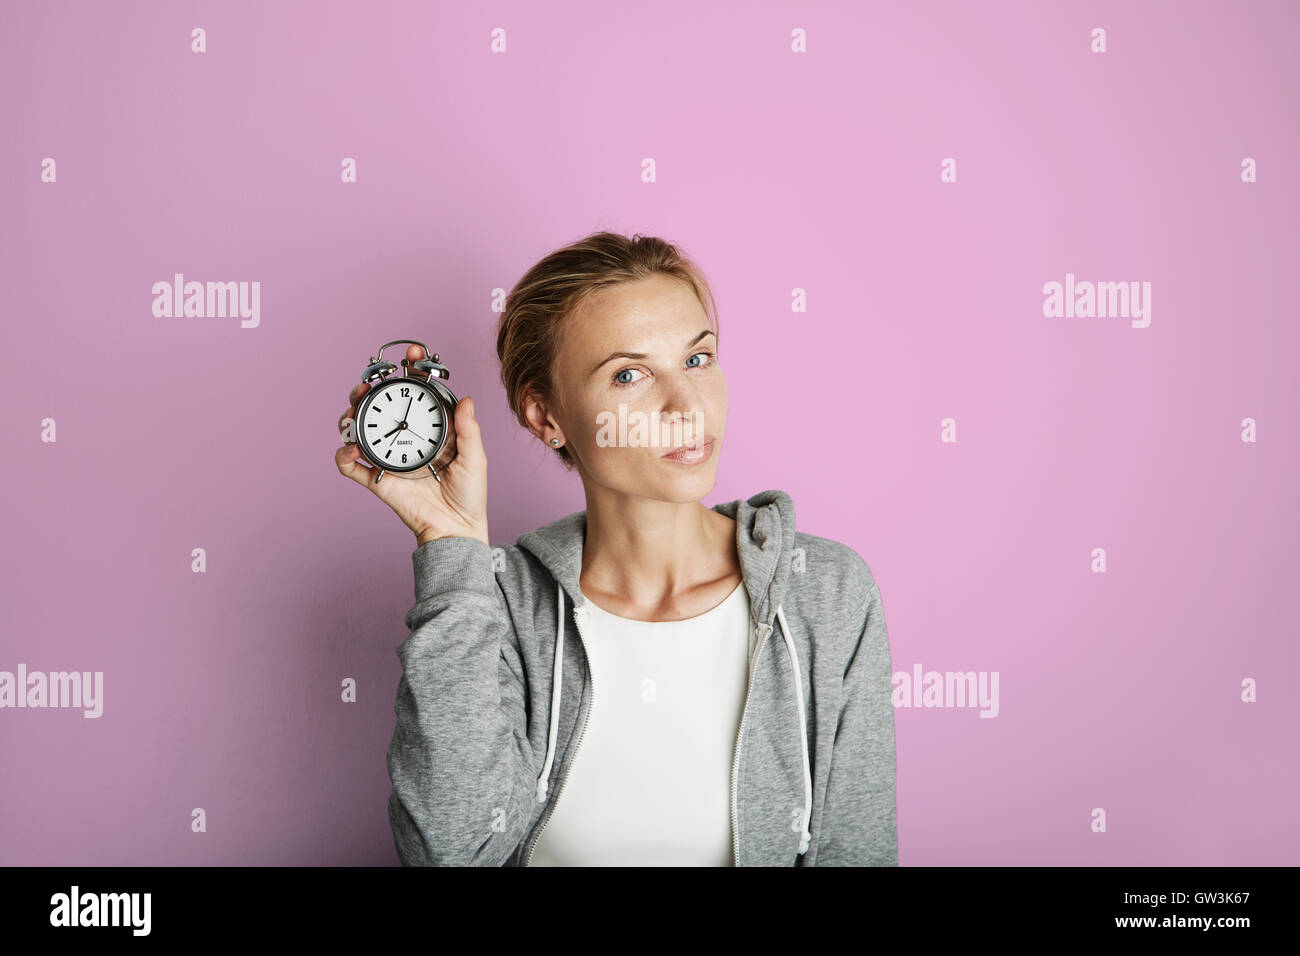 Portrait Handsome Young Woman Posing Blank Pink Background.Pretty Girl Smiling Holding Vintage Alarm Clock Hand - Stock Image